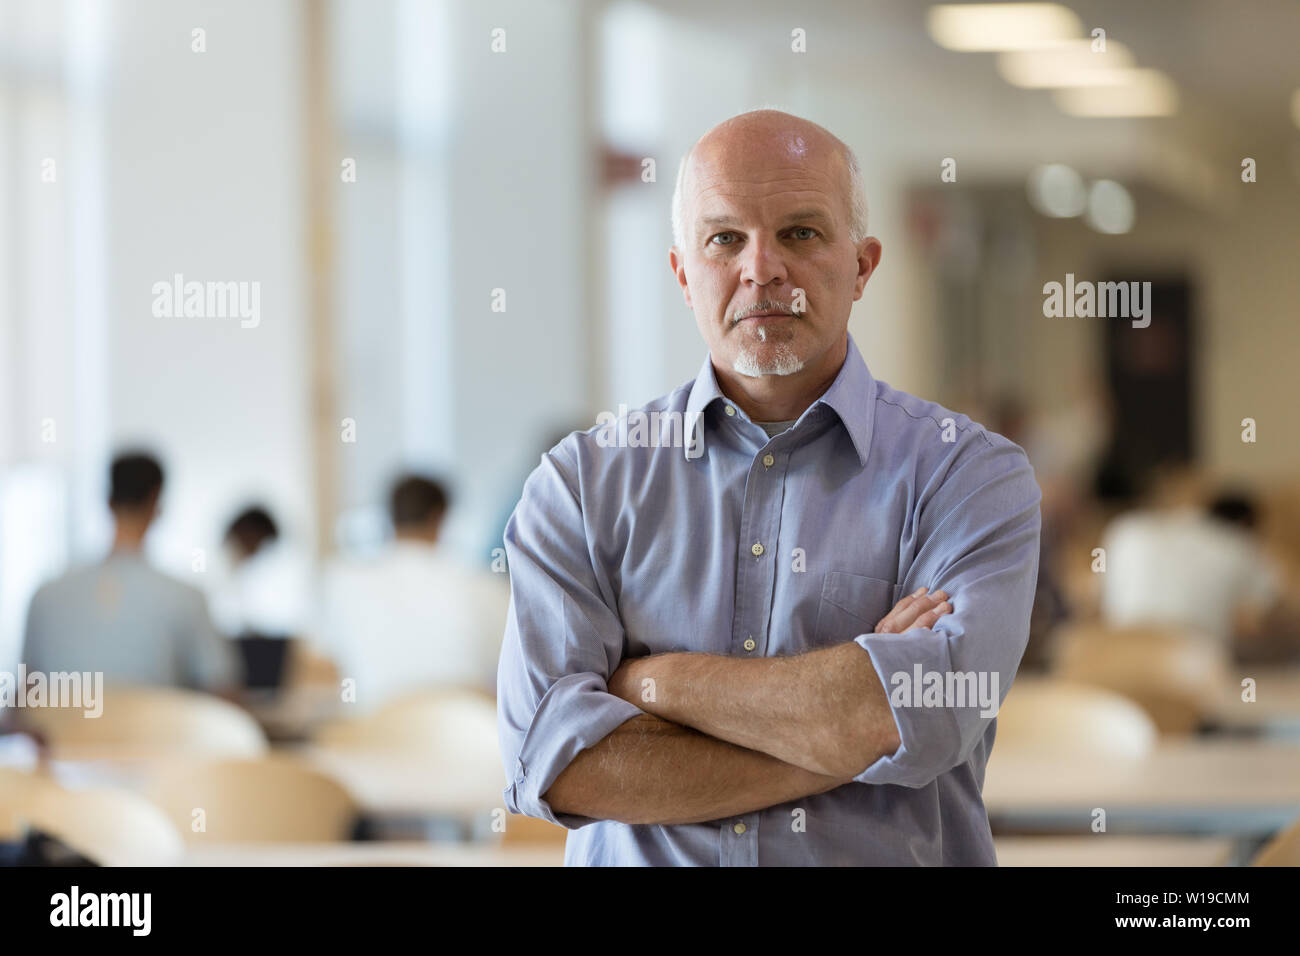 Resolute senior businessman standing with folded arms and a serious stern expression in a large open plan office with people working in the background - Stock Image